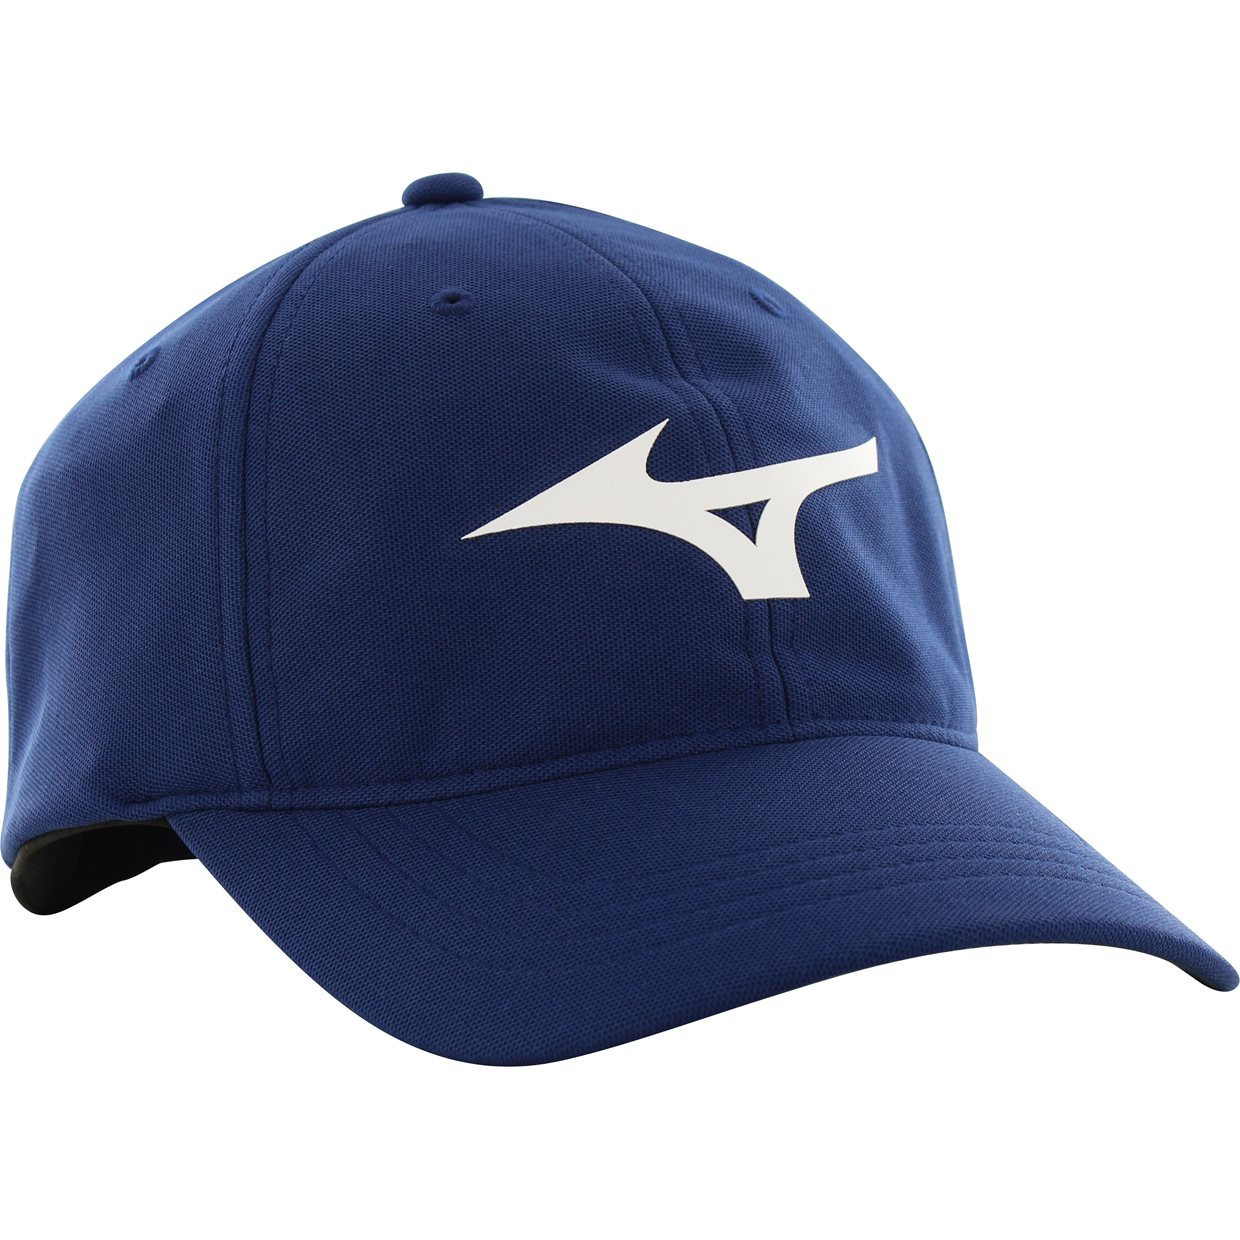 b99bb44cdb1 Mizuno Tour Adjustable Headwear Apparel at GlobalGolf.com